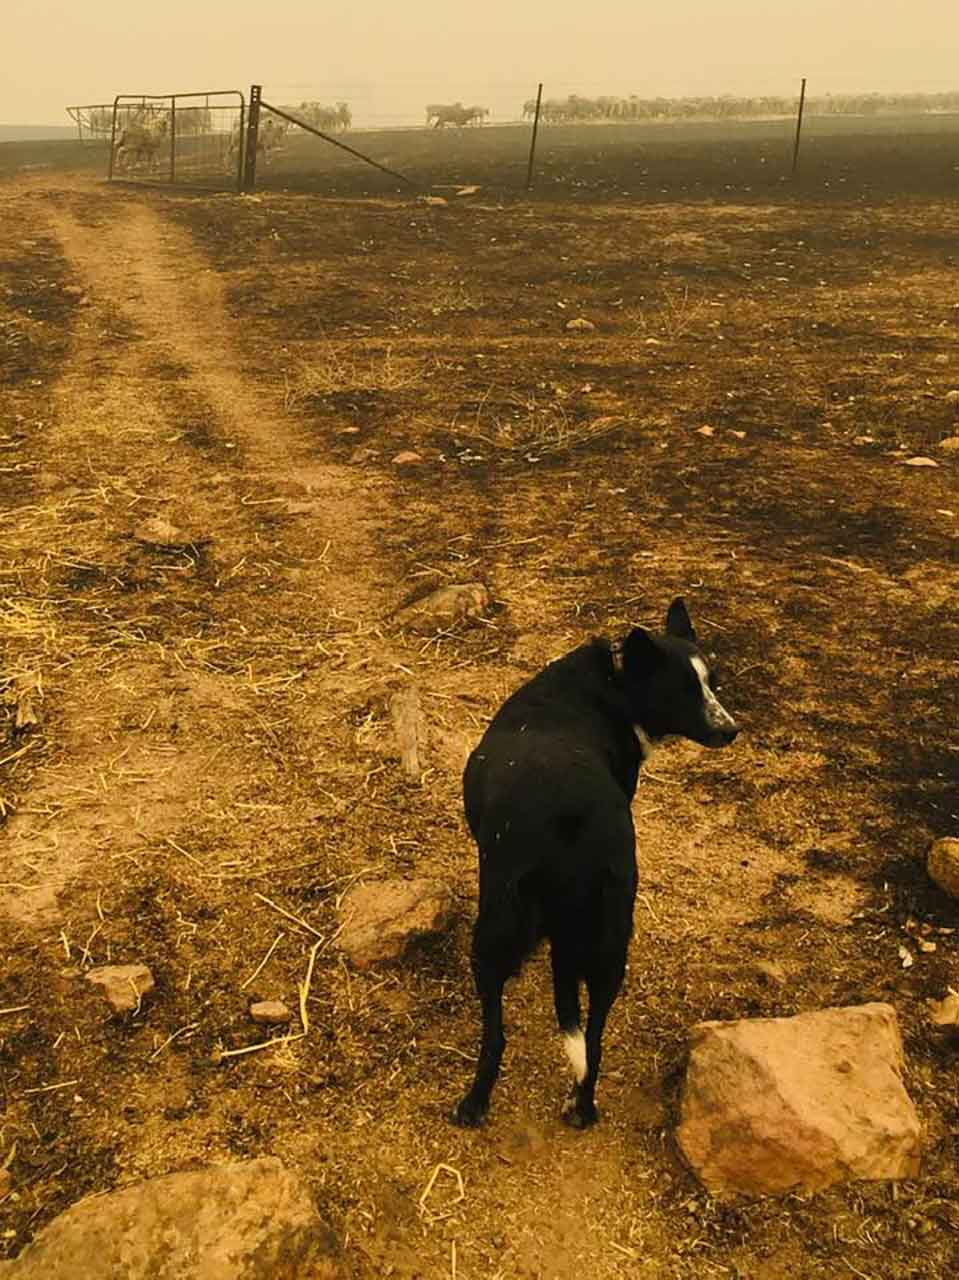 Fires australia brave heroic border collie dog saves herd flock sheep